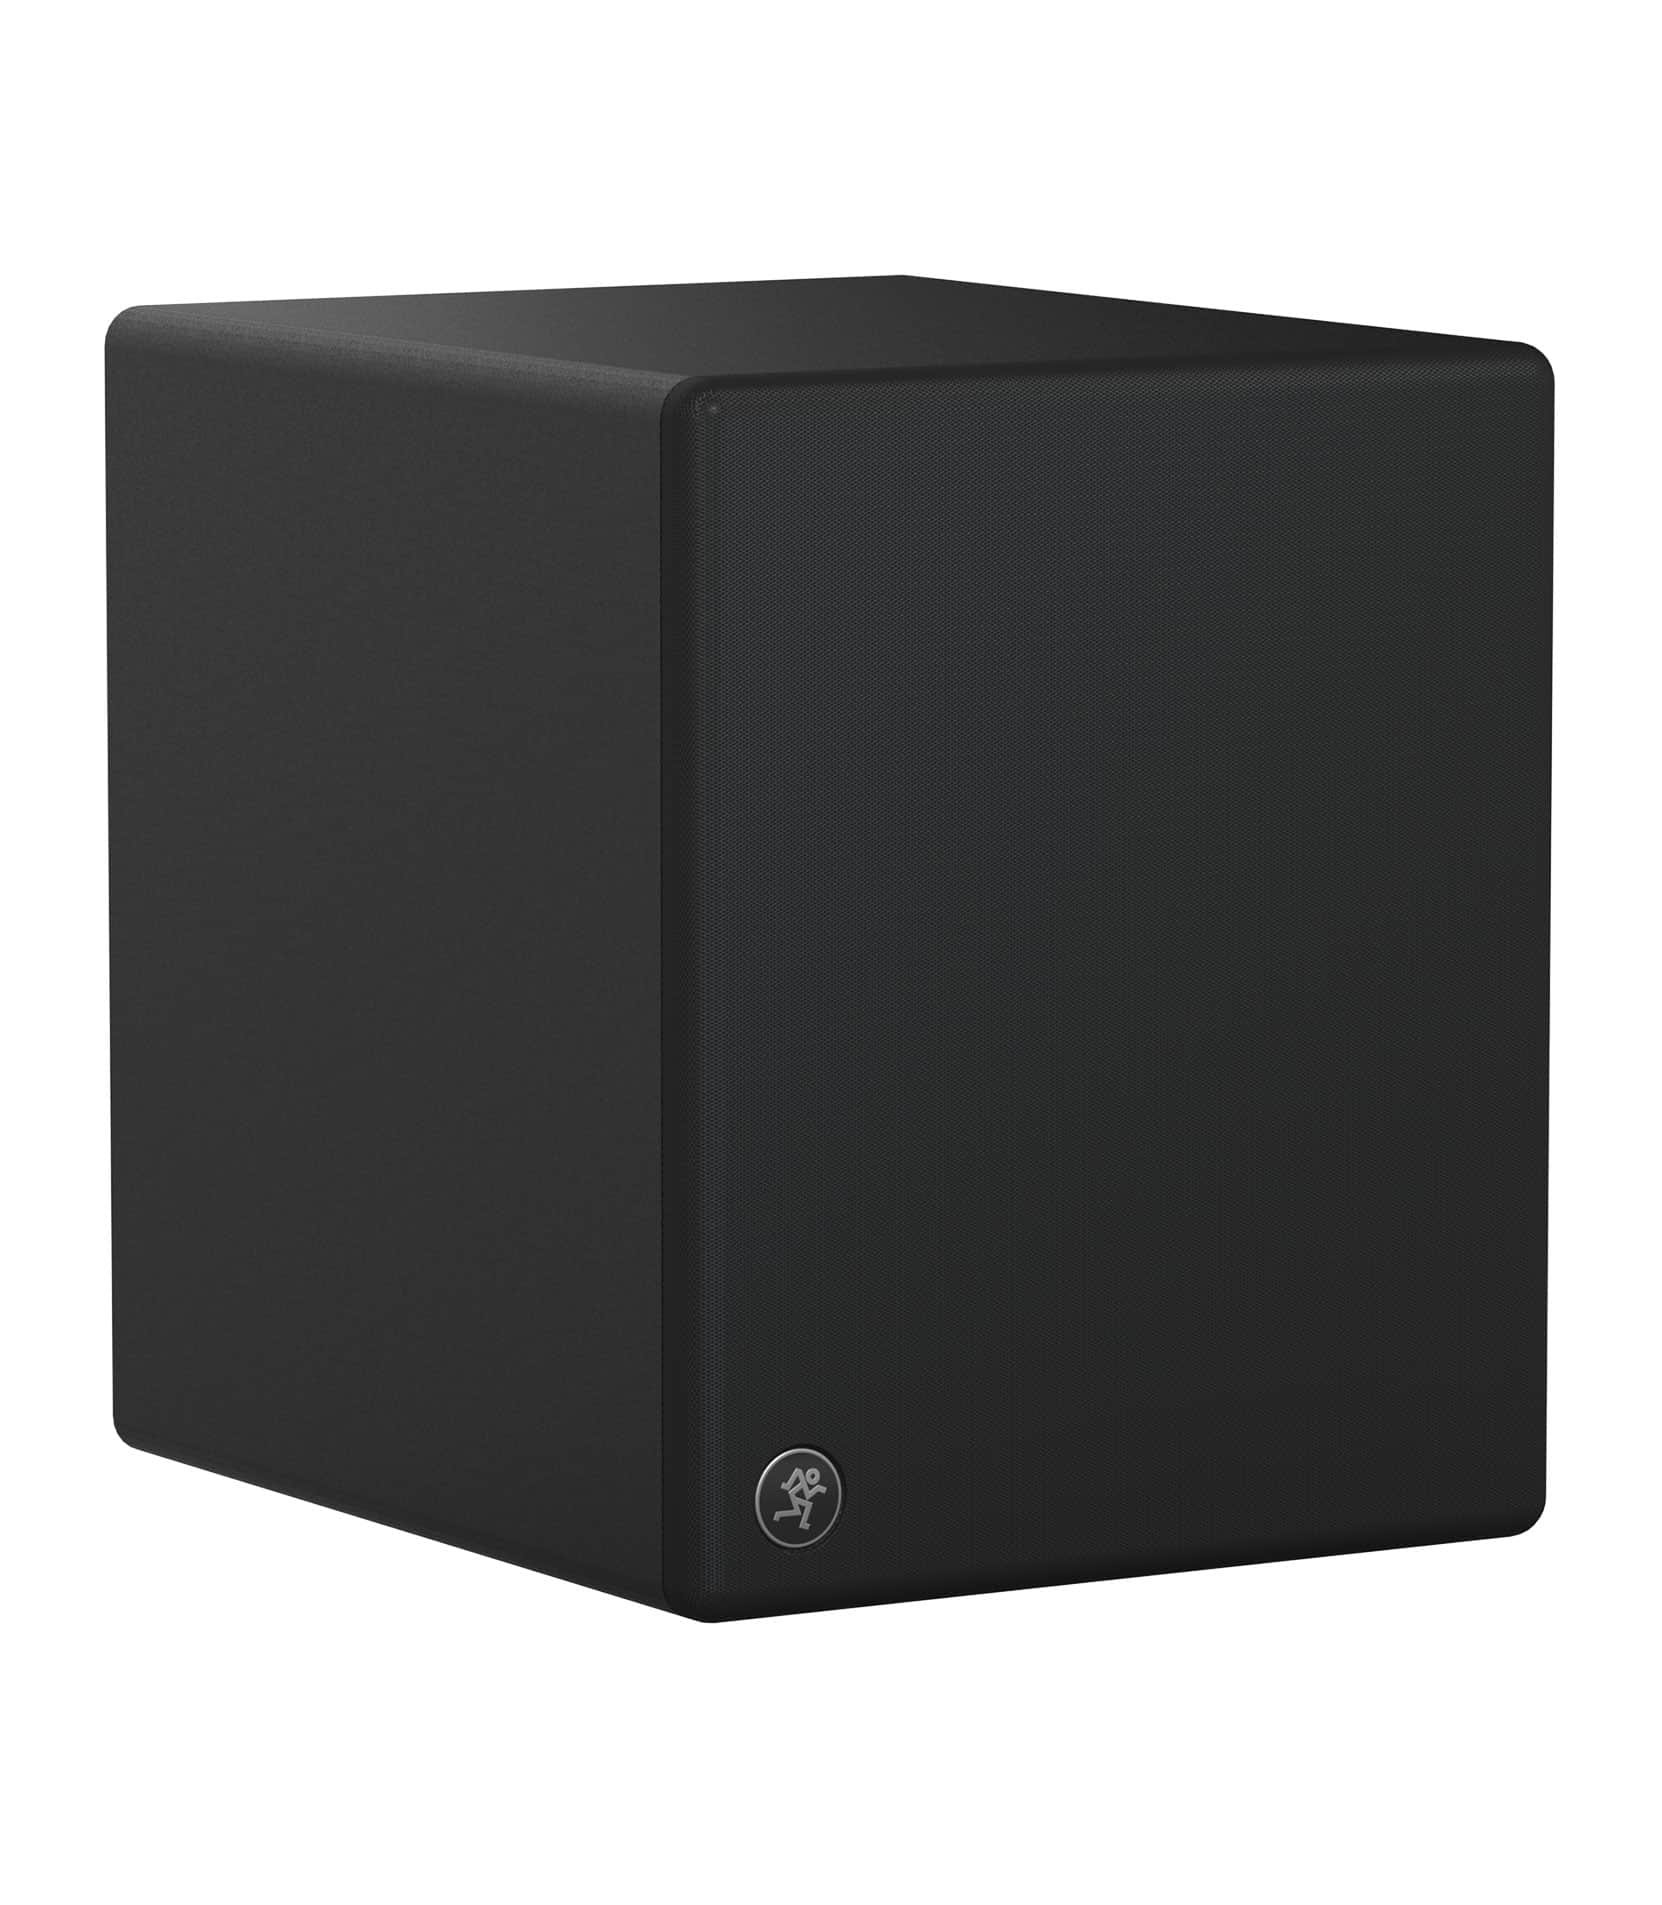 Melody House Musical Instruments Store - MR10Smk3 10 Powered Studio Subwoofer